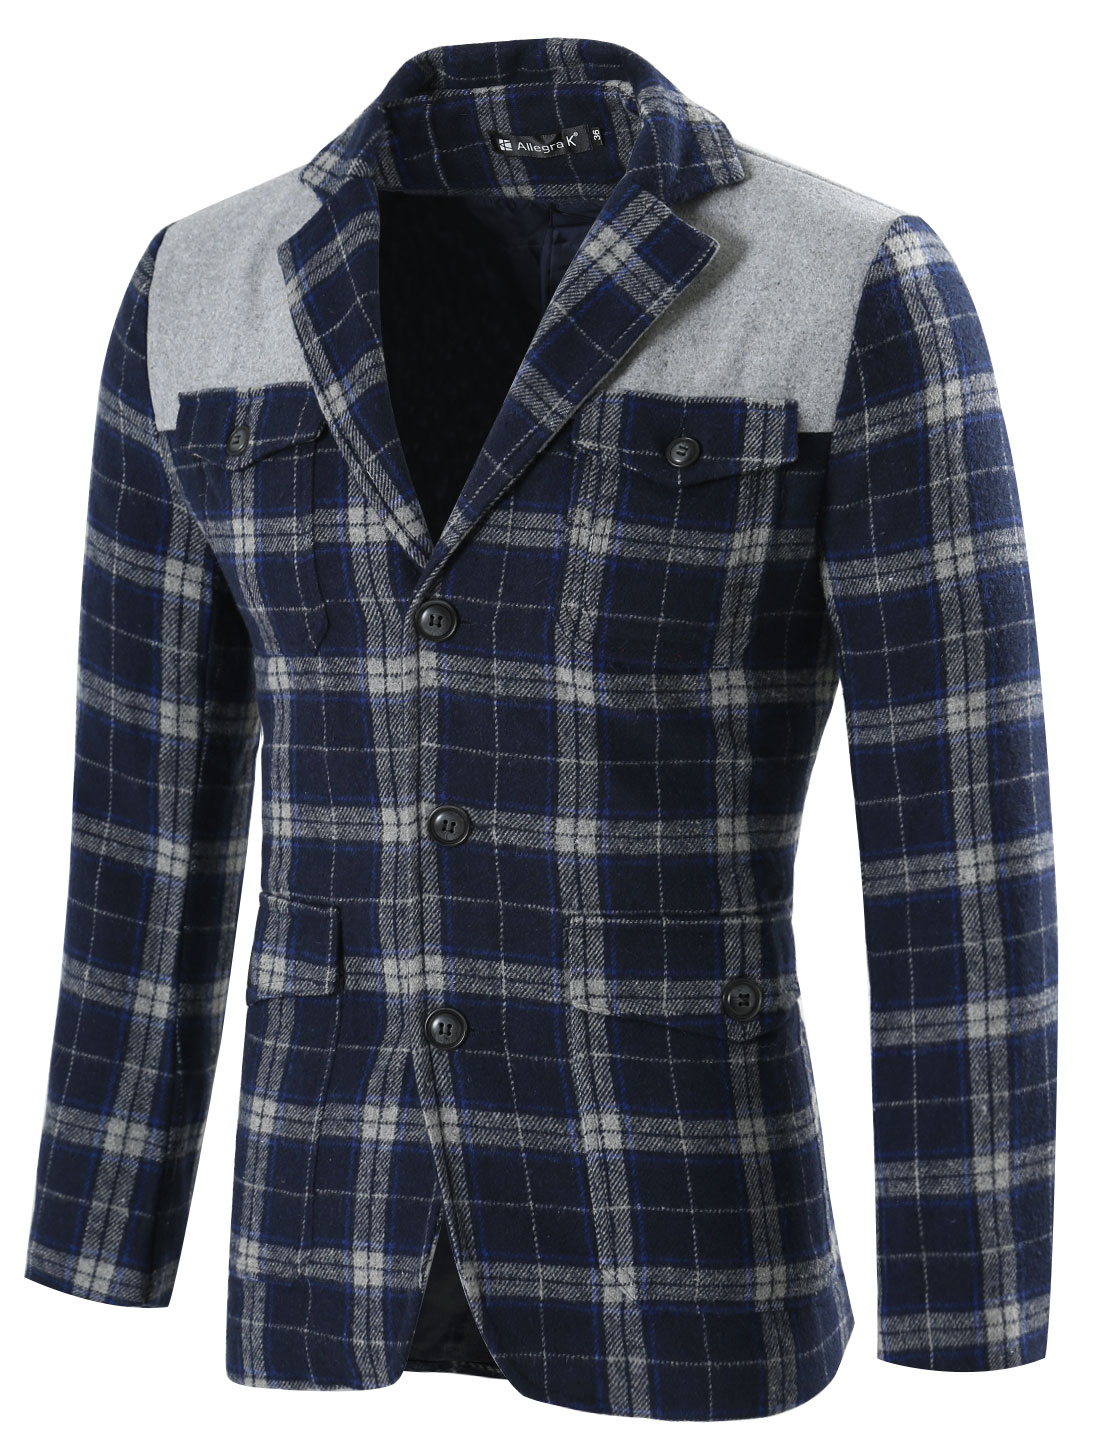 Men Notched Lapel Checks Multi Pockets Button Closure Blazer Blue L